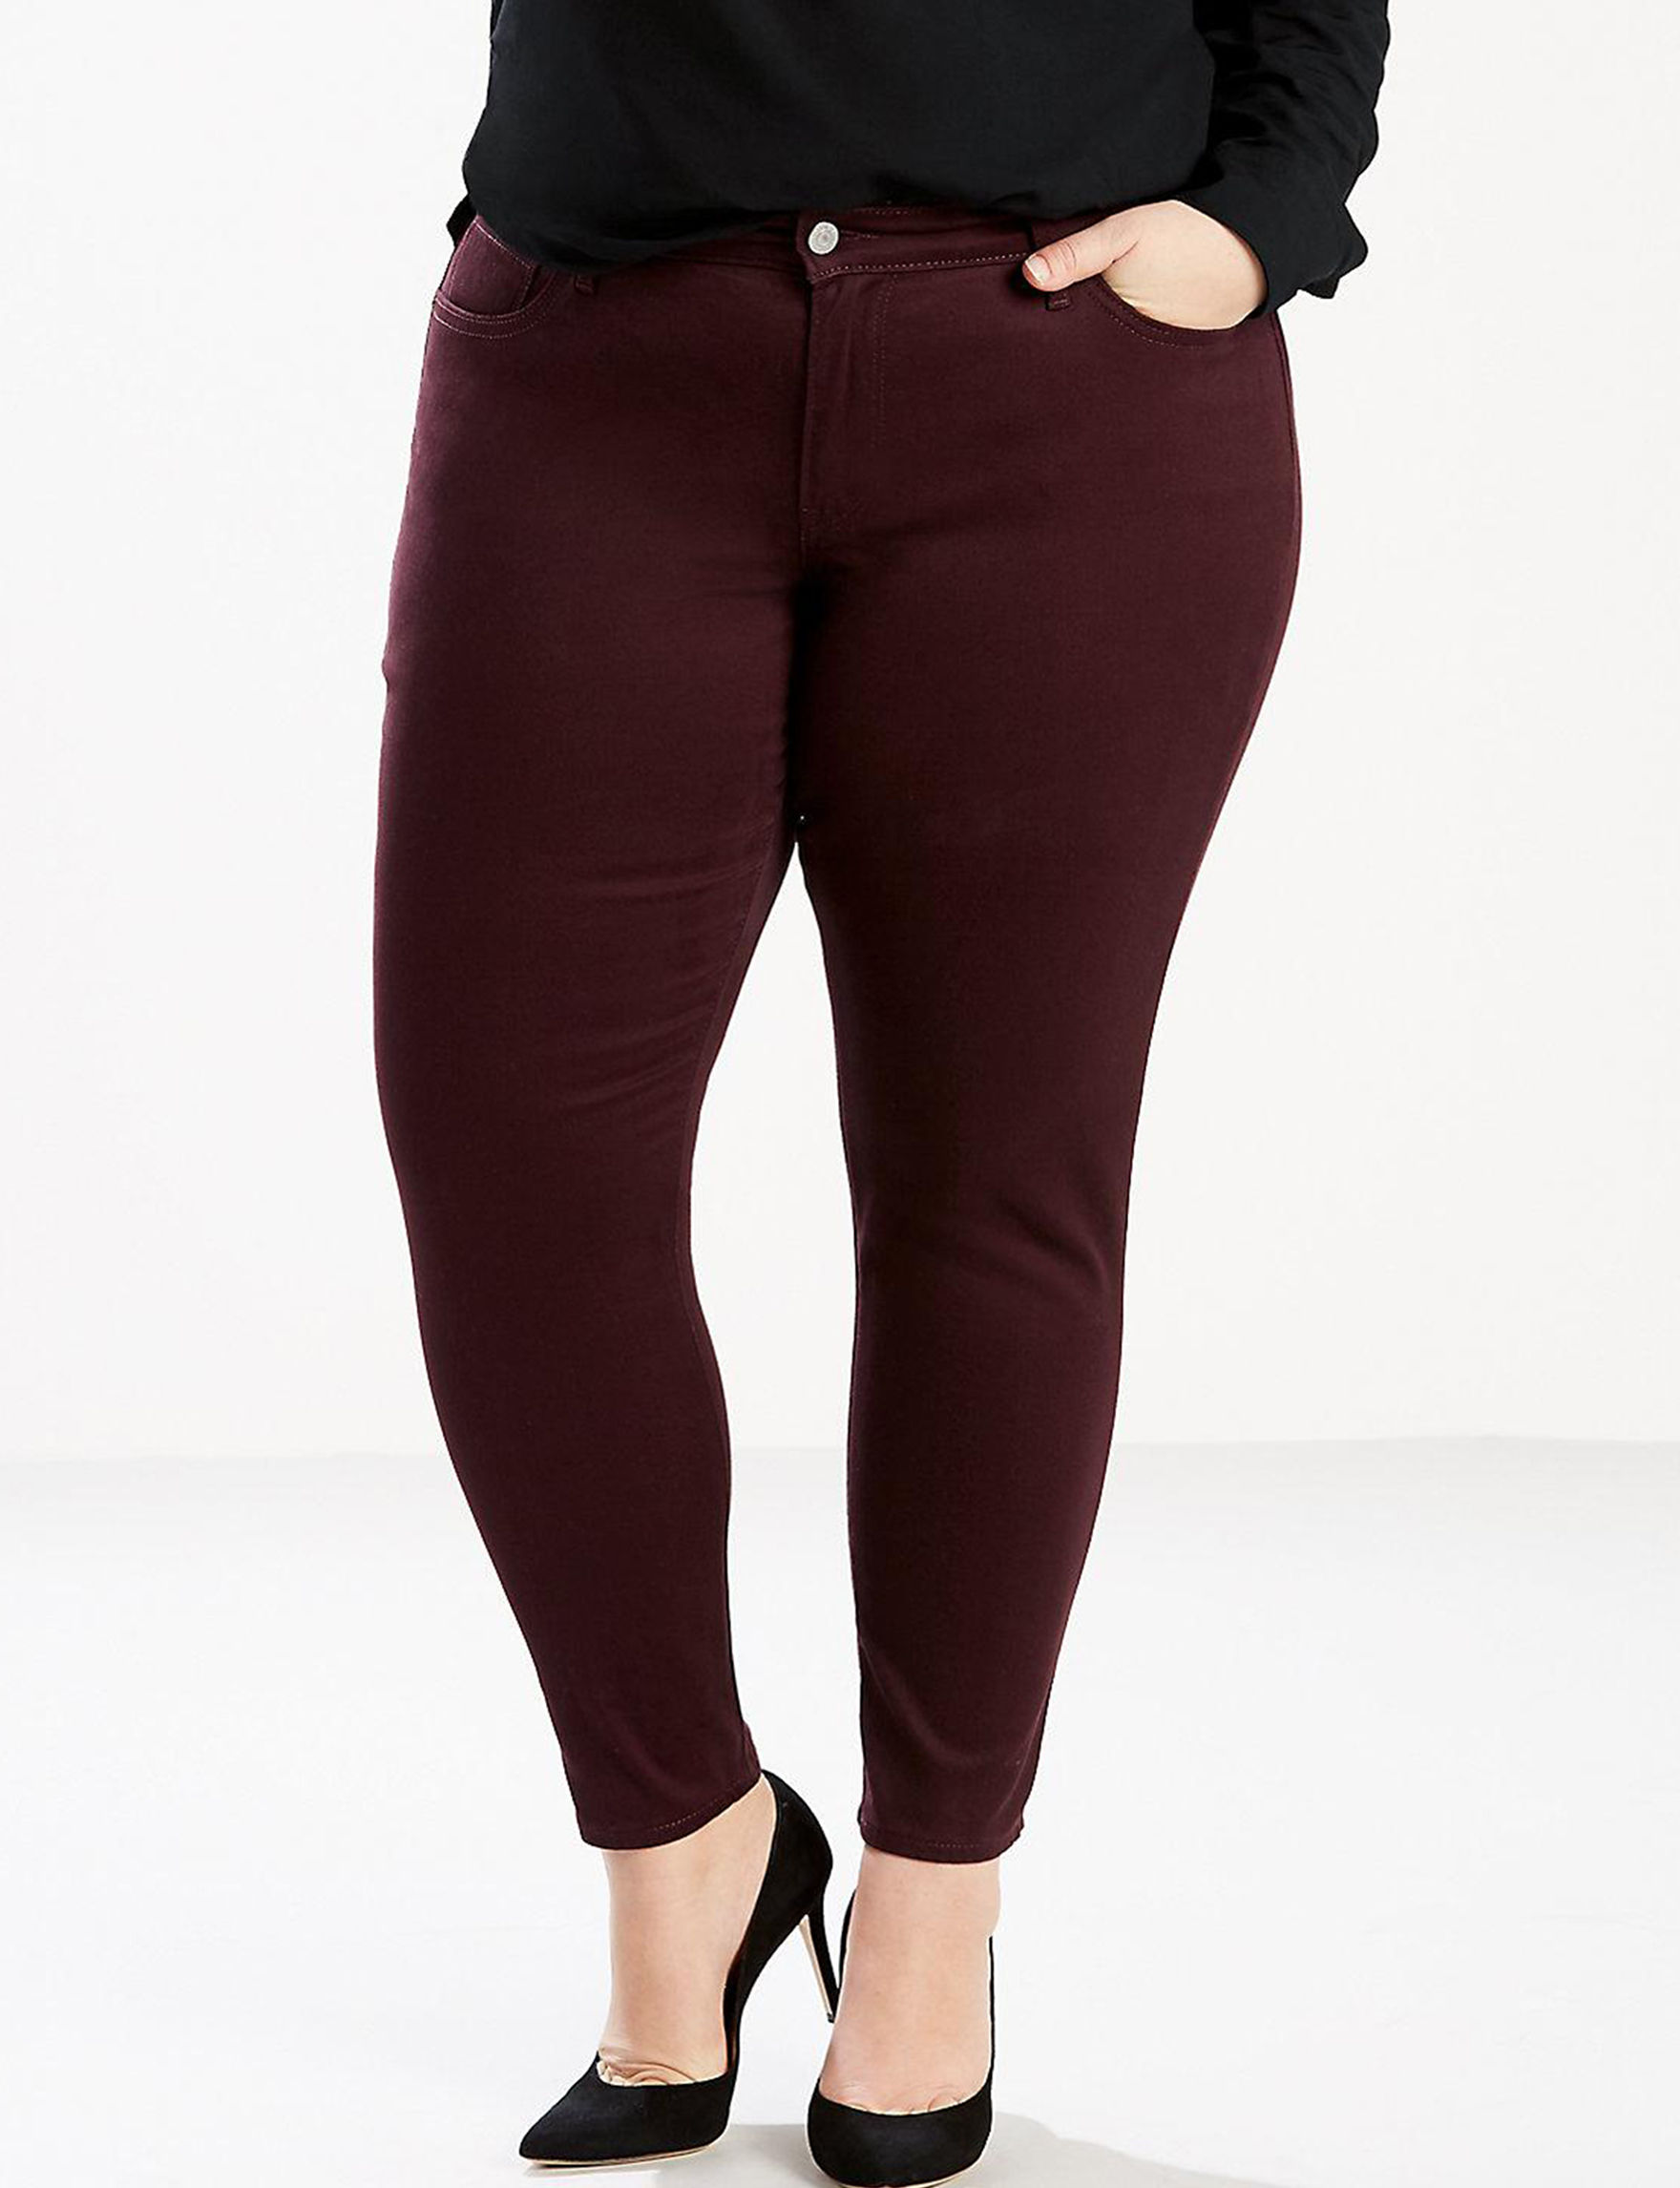 Levi's Red Wine Skinny